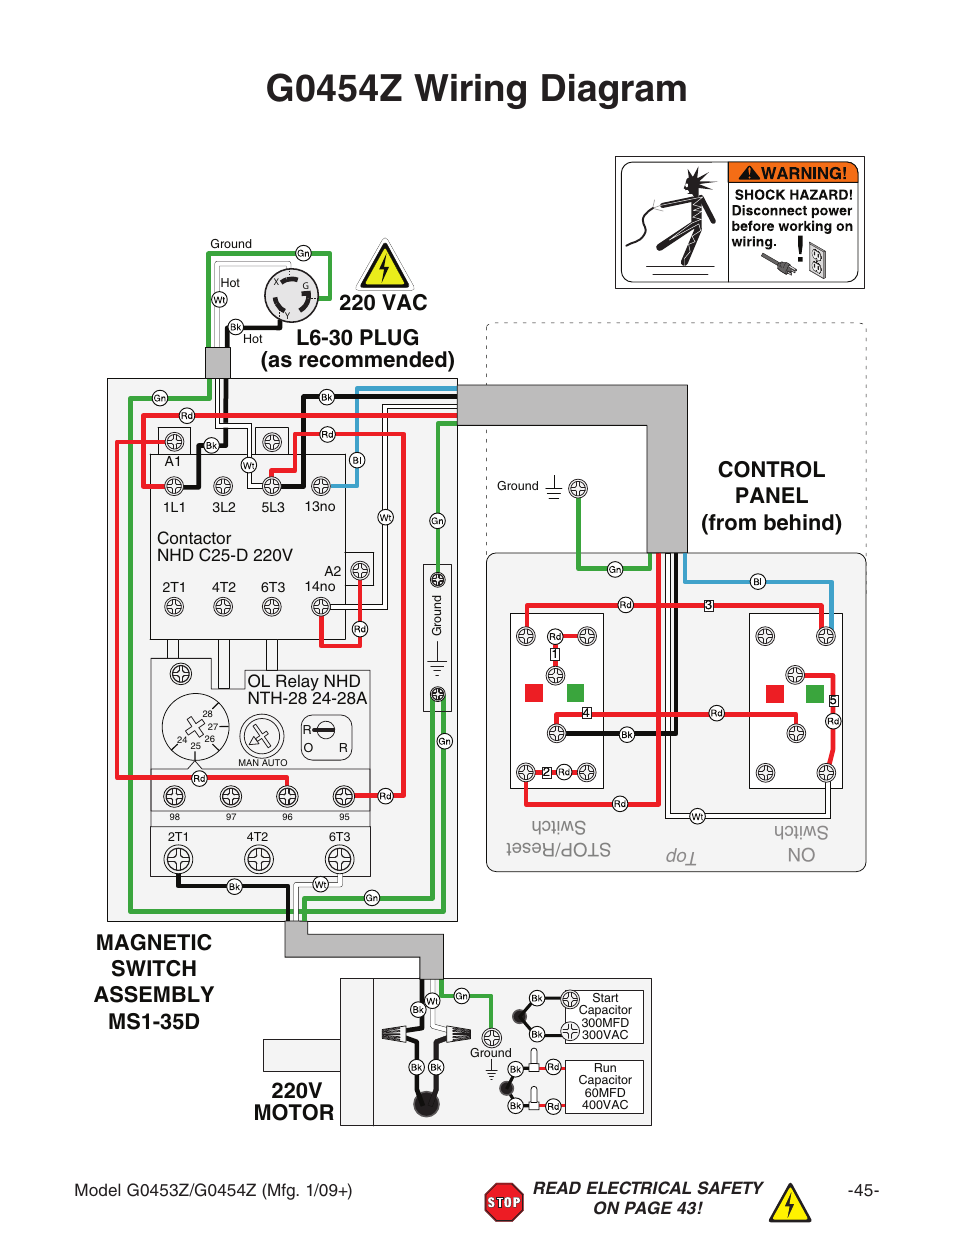 G0454z wiring diagram, 220v motor, On switch top stop/reset switch |  Grizzly G0453PX User Manual | Page 51 / 72 | Original modeManuals Directory